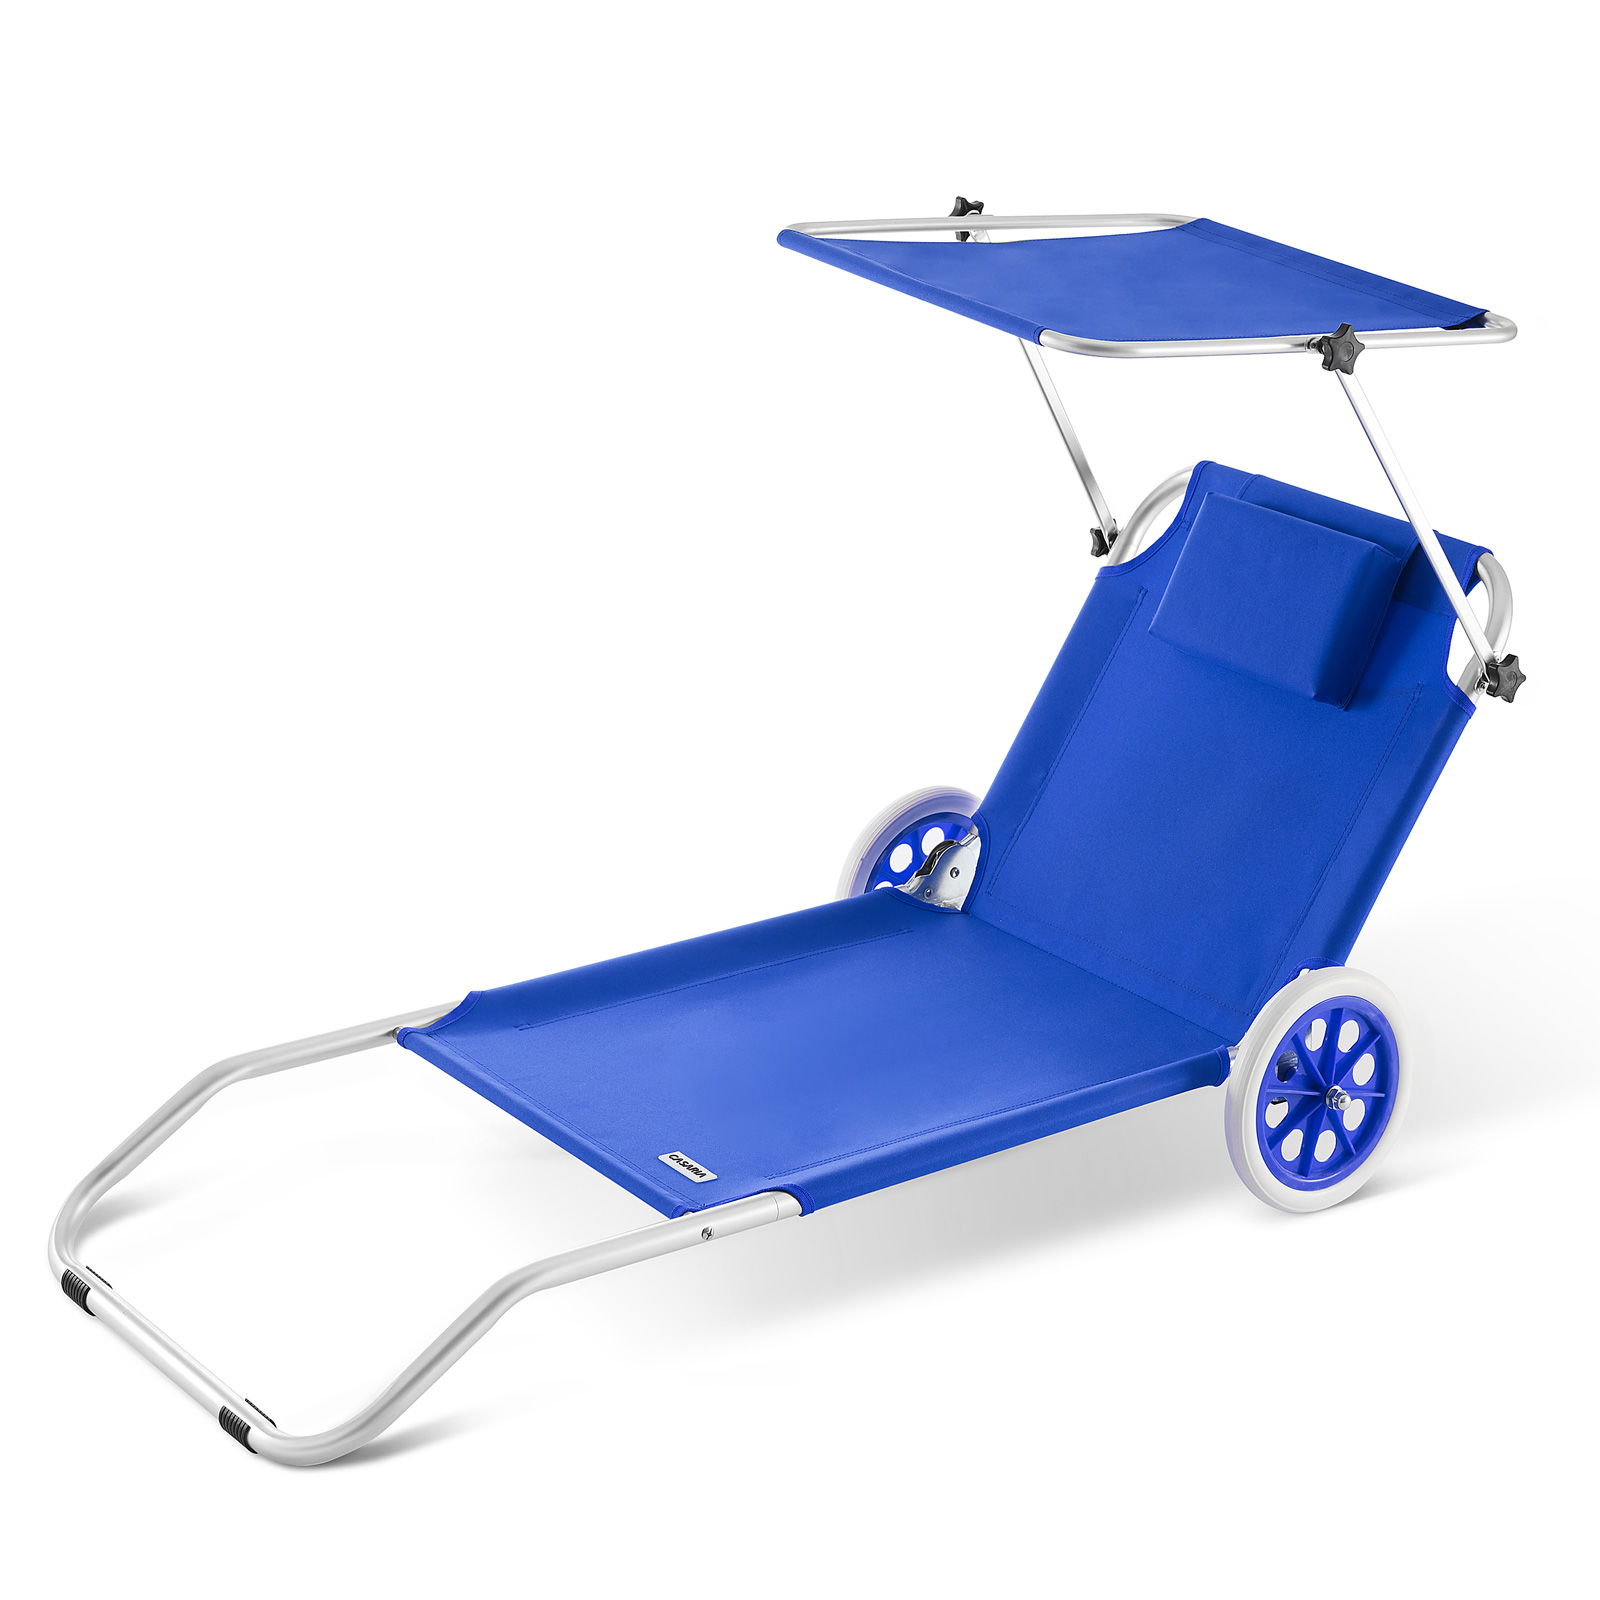 Chaise longue cr te bain de soleil plage en aluminium for Chaise longue de plage